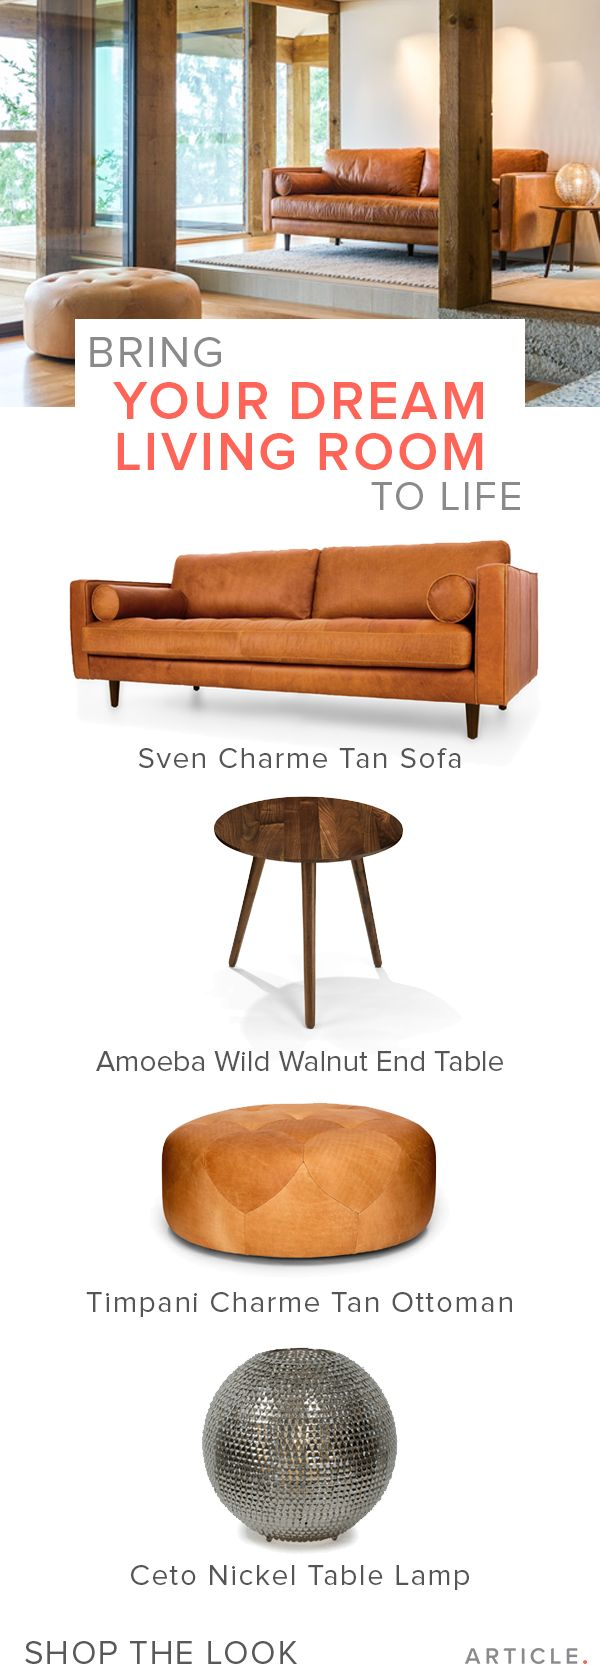 Shop the look for this mid-century modern space.   https://www.article.com/product/1121/sven-charme-tan-right-sectional-sofa?utm_source=google&utm_medium=search&utm_campaign=google-shopping&forceCurrencyId=1&gclid=Cj0KEQjwhtO7BRCtwuO9gfTH-fQBEiQAdJ8FY8ErFAMgUzHUWDELOlurxf7abtjTVRwo-mfl6mHtio0aAh7q8P8HAQ#